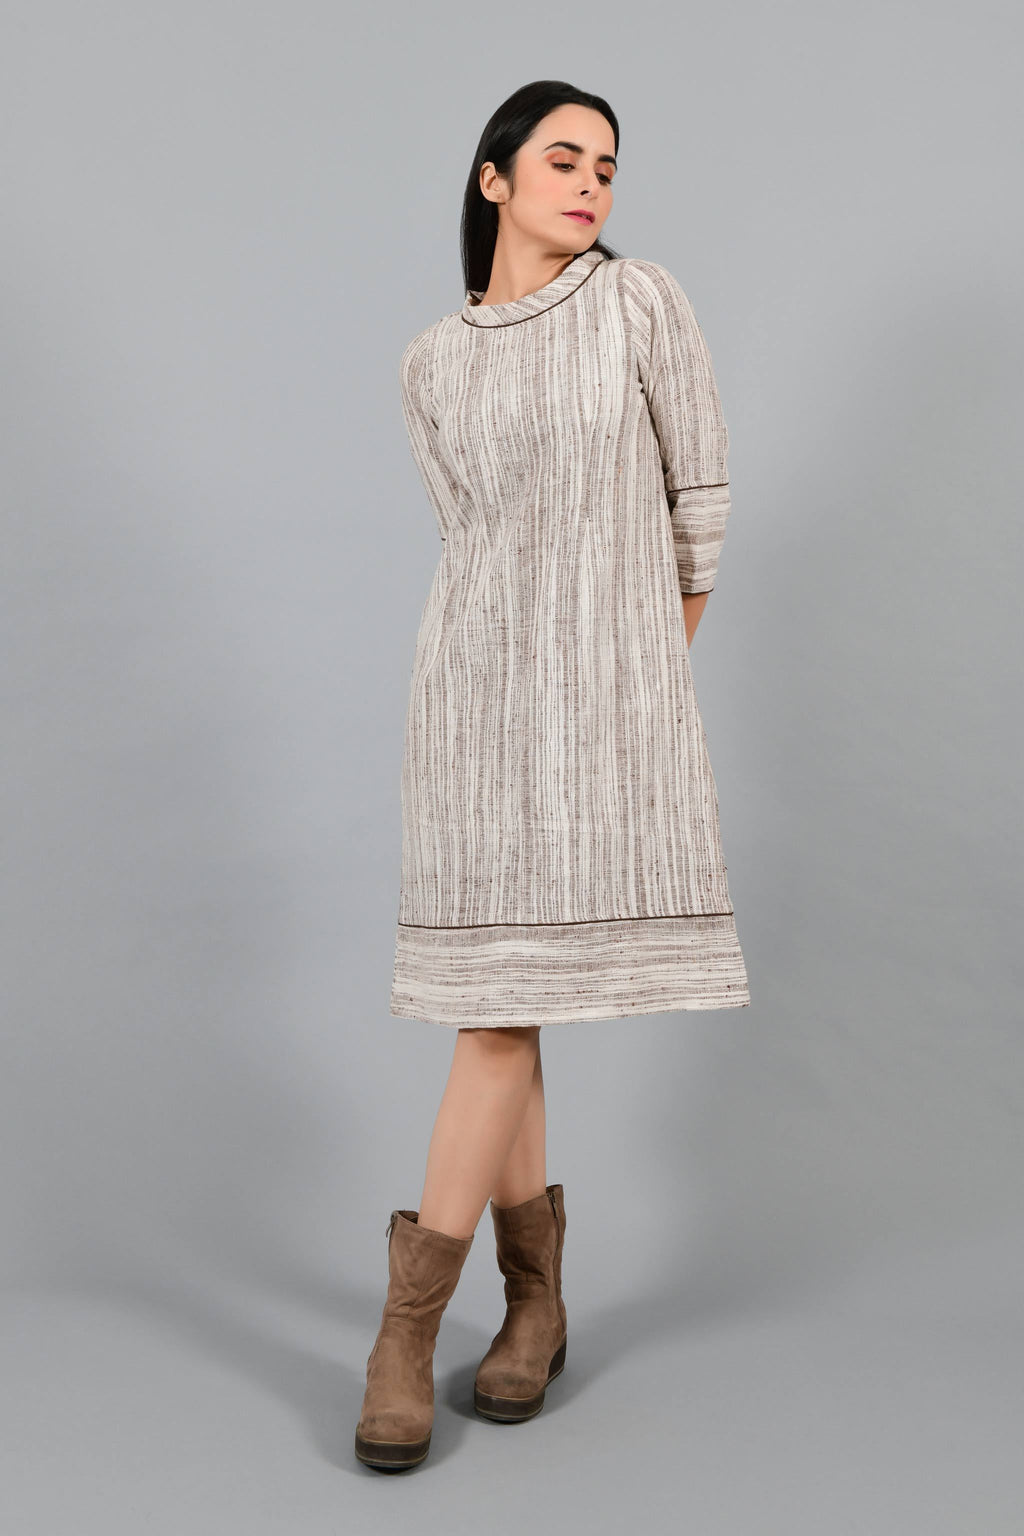 Front pose of an Indian Womenswear female model wearing brown handspun and handwoven cotton a-line dress by Cotton Rack.